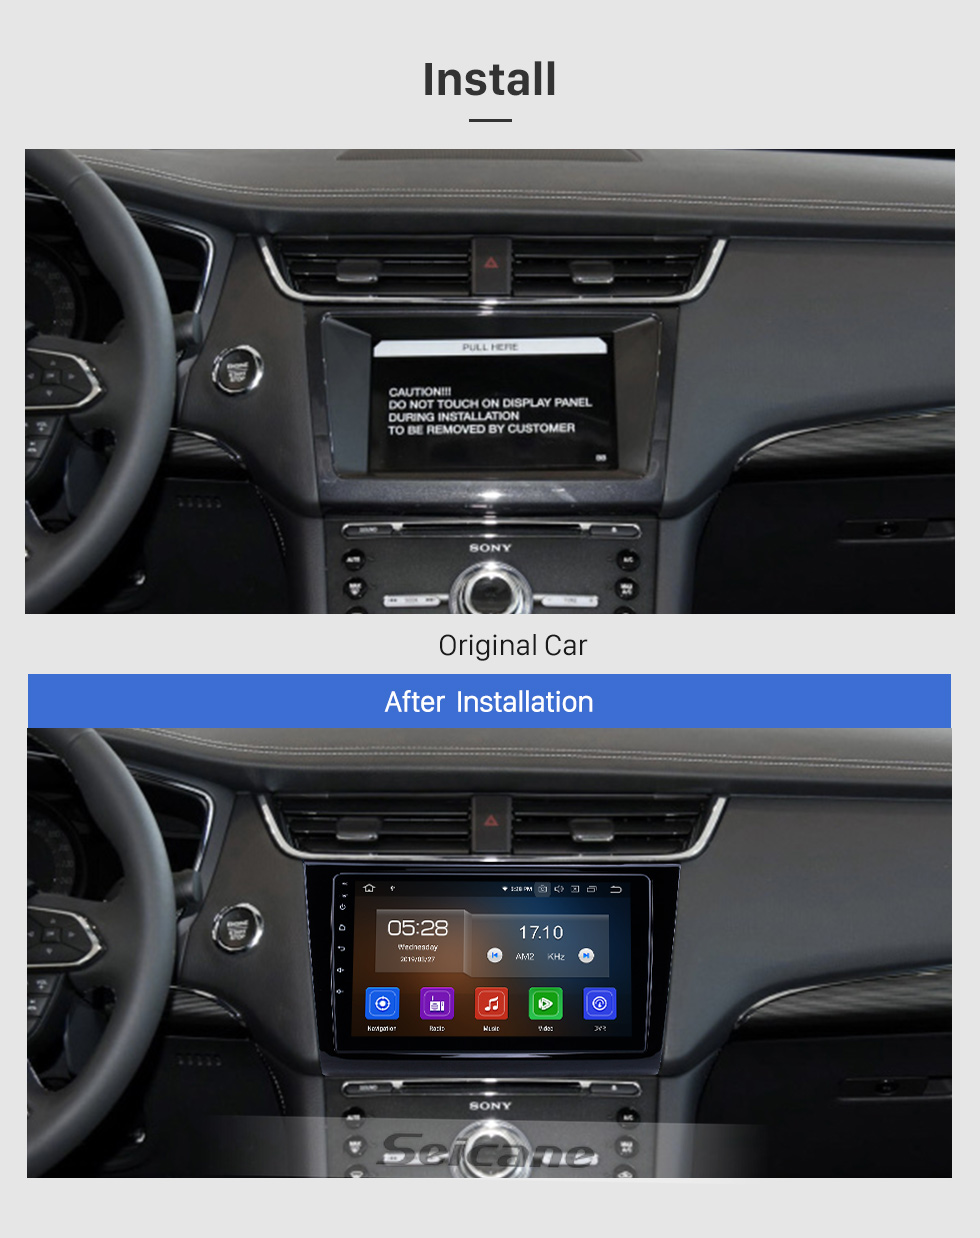 Seicane 2015-2018 Ford Taurus Android 9.0 9 Zoll GPS Navigationsradio Bluetooth HD Touchscreen USB Carplay Unterstützung DVR DAB + OBD2 SWC